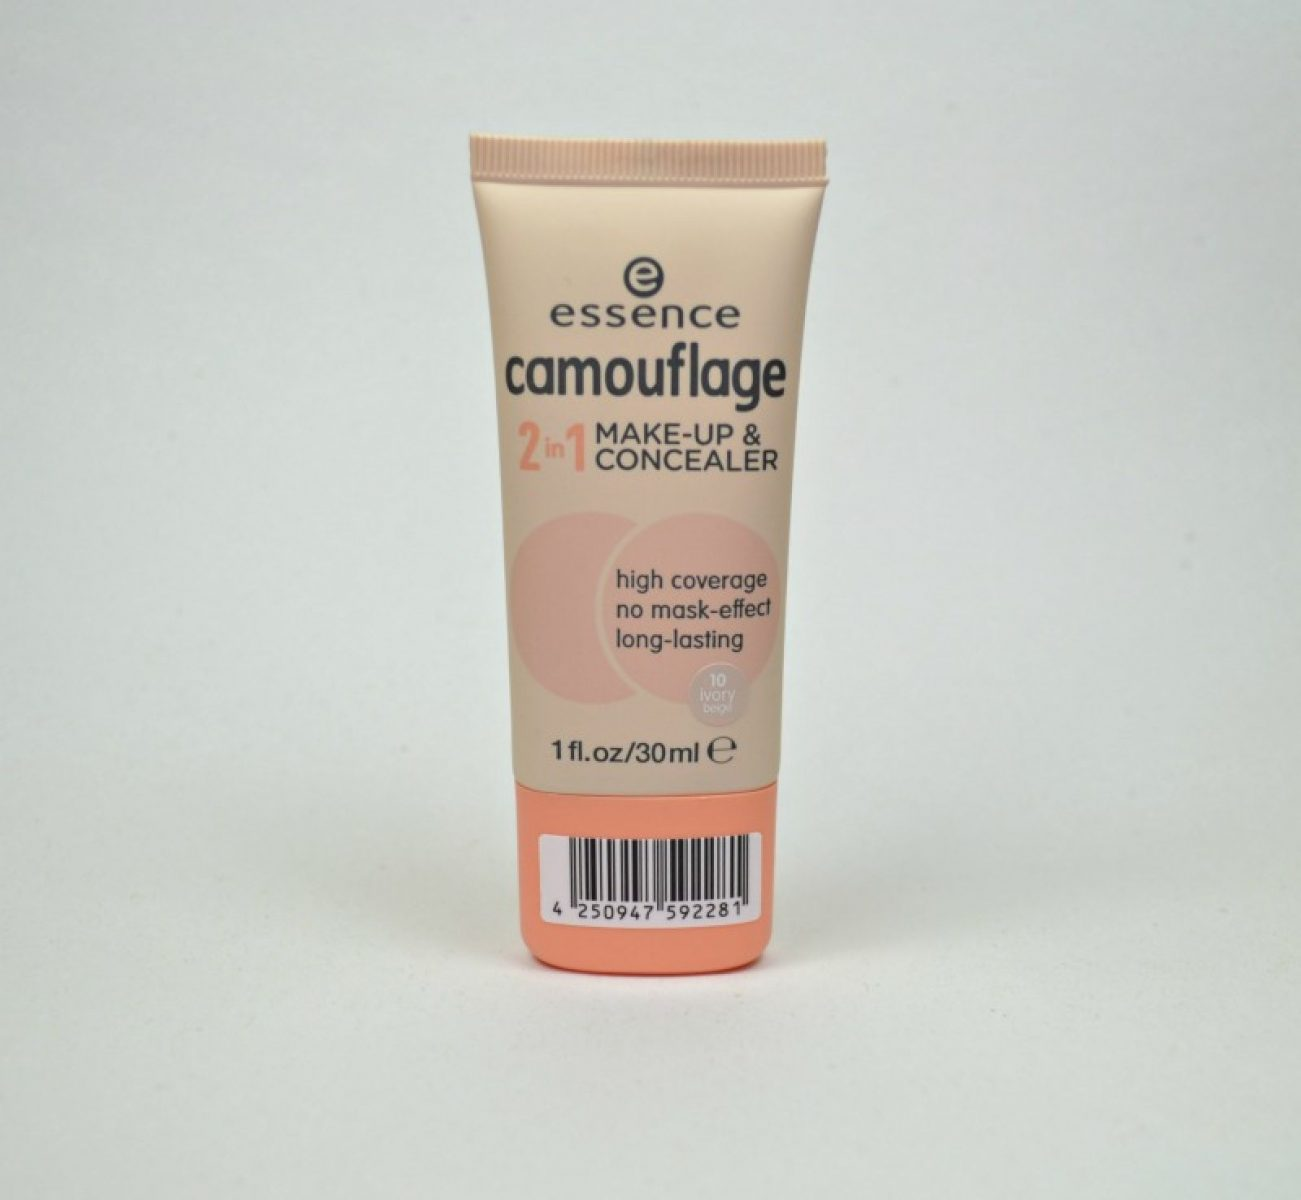 Essence Camouflage 2 in 1 Make-up & Concealer in shade 10 Ivory Beige